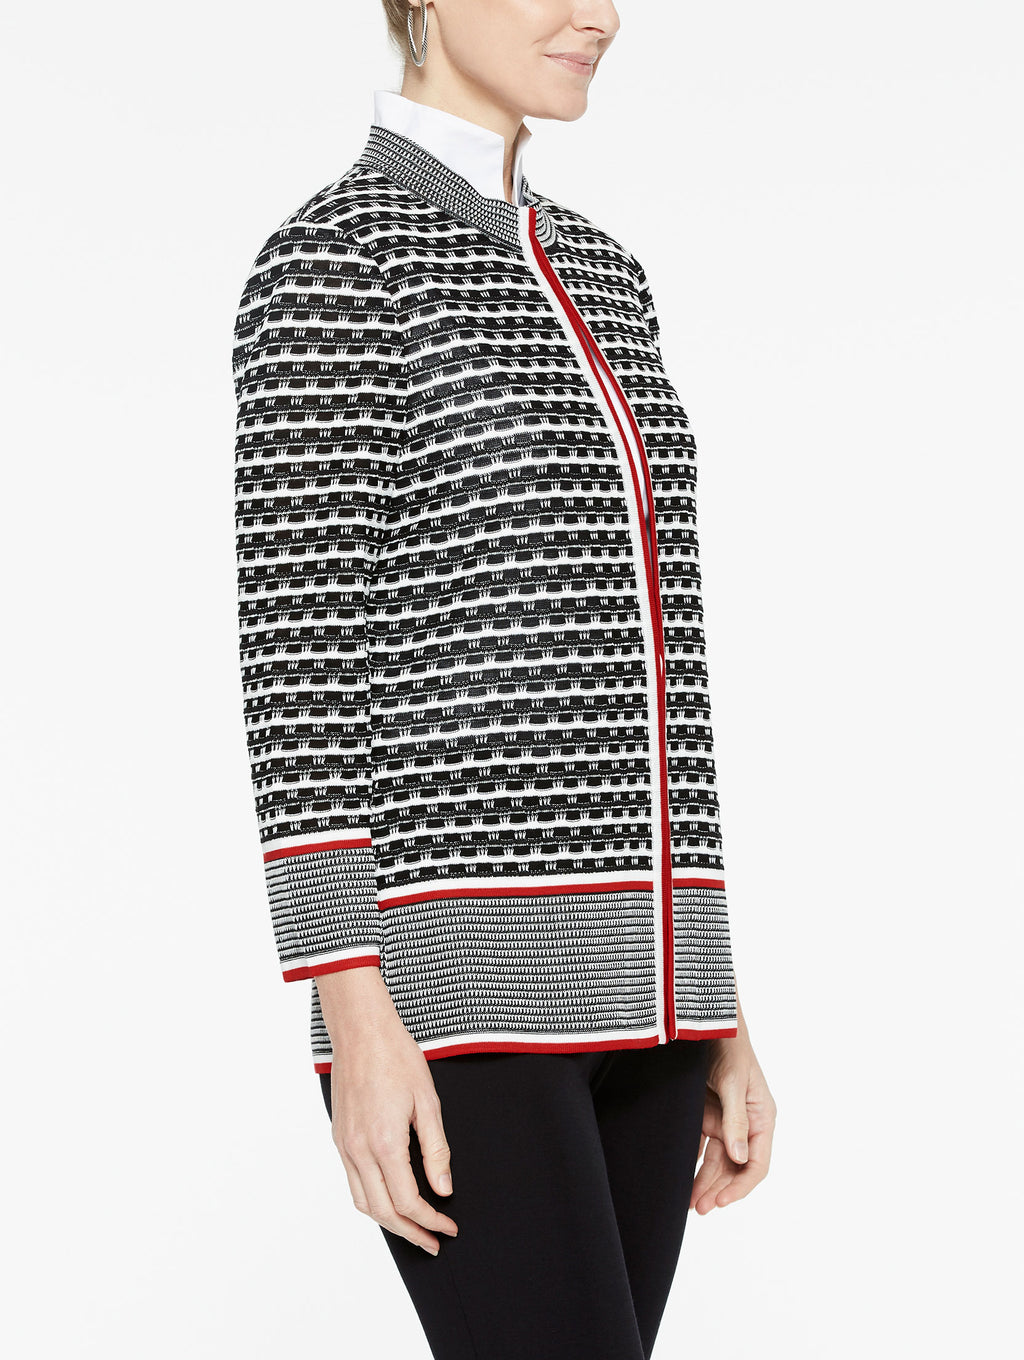 Digital Wavy Pattern Jacket Color Ivory/Black/Tango Red